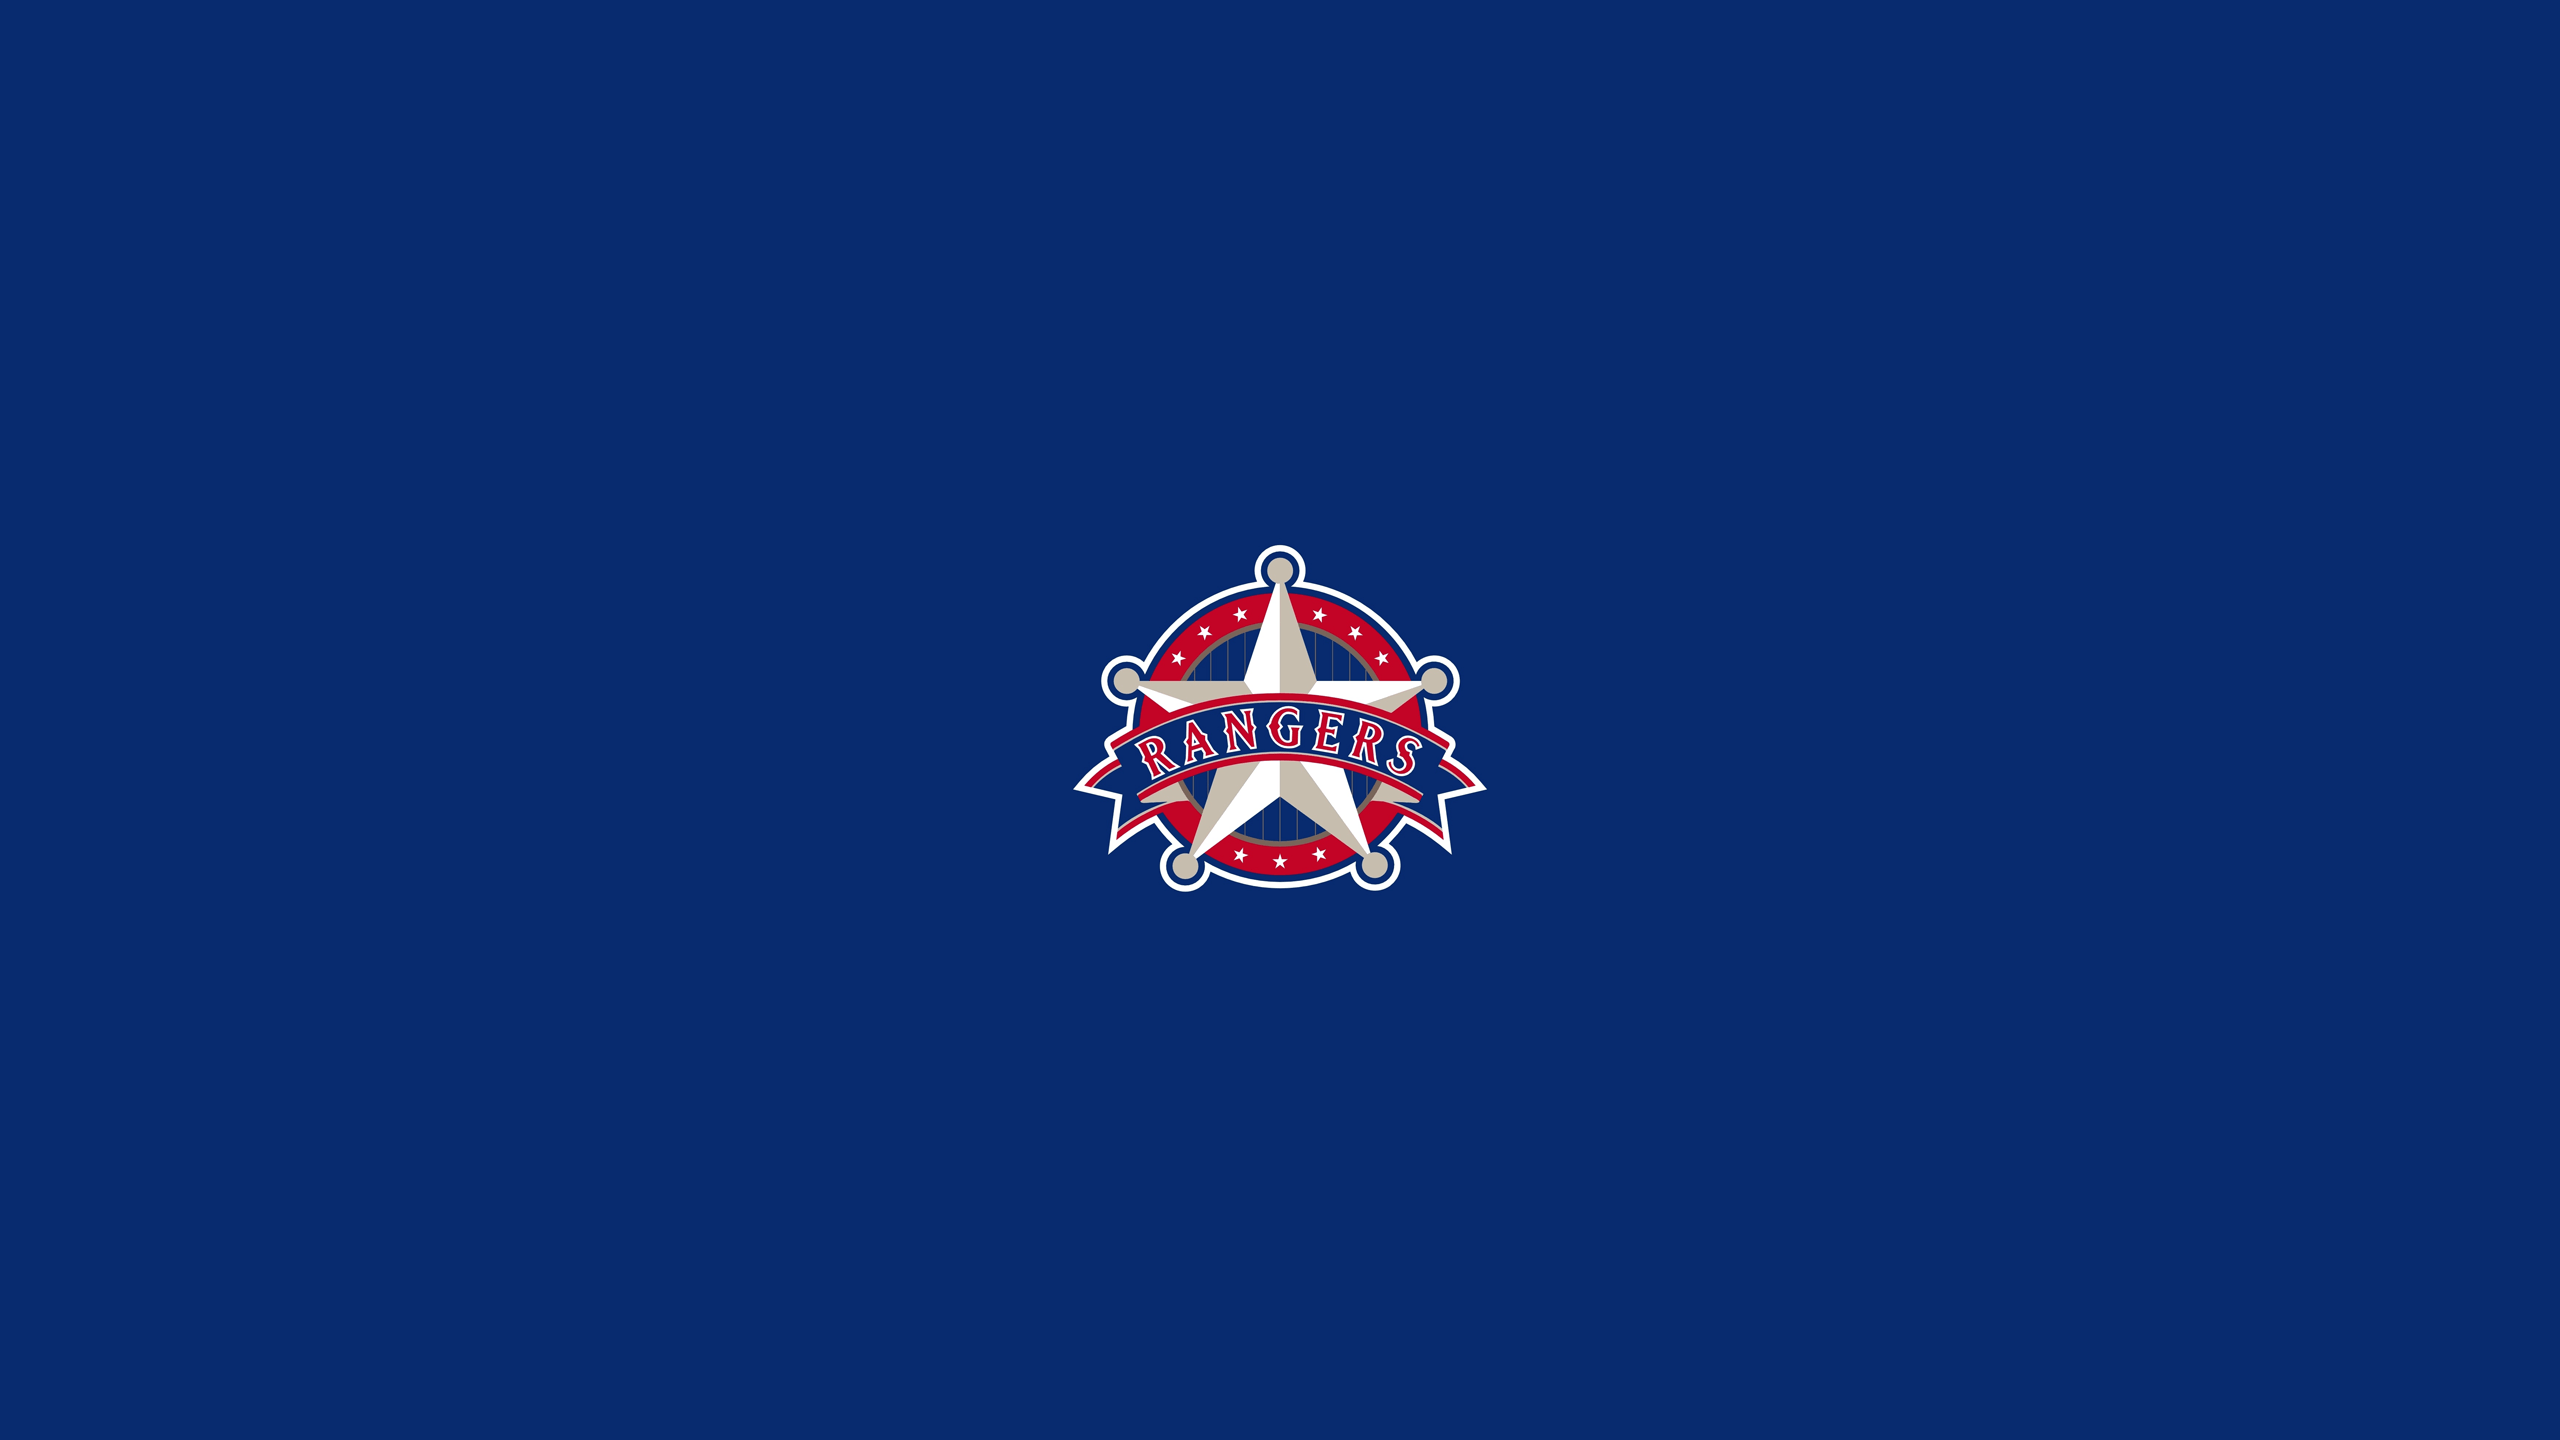 texas rangers wallpaper - photo #9